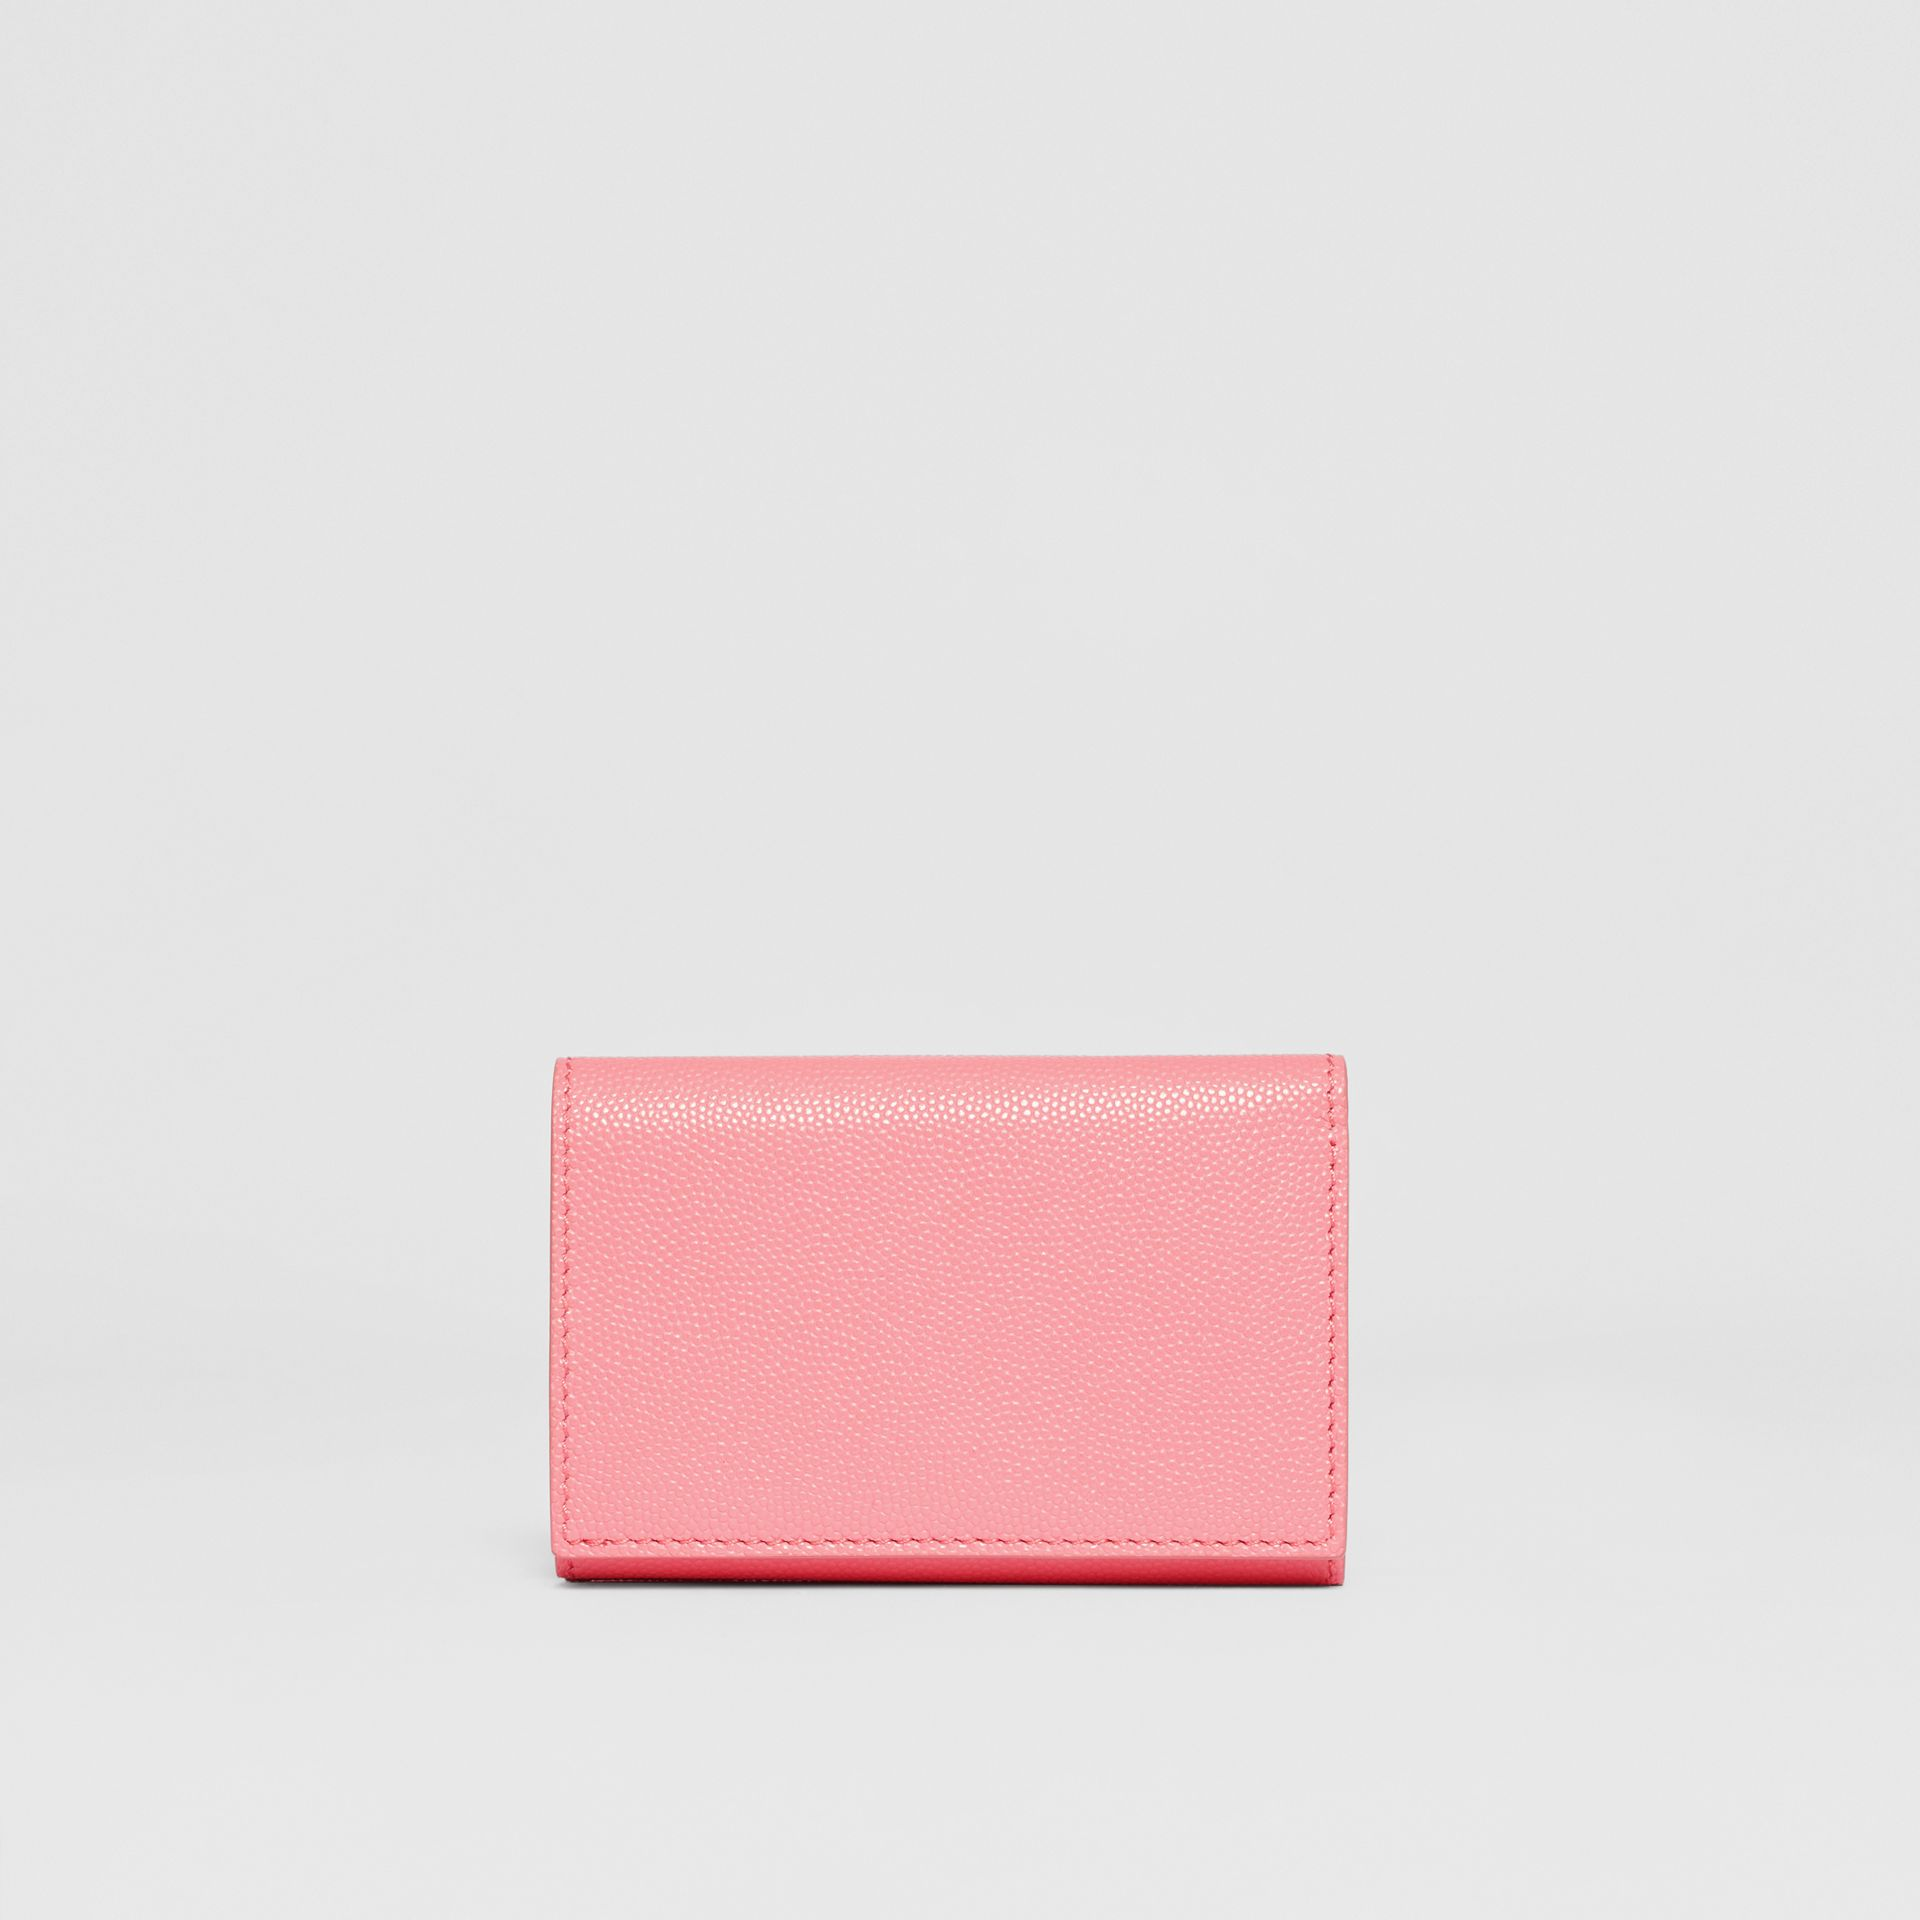 Small Grainy Leather Folding Wallet in Candy Floss/palladio - Women | Burberry United Kingdom - gallery image 4